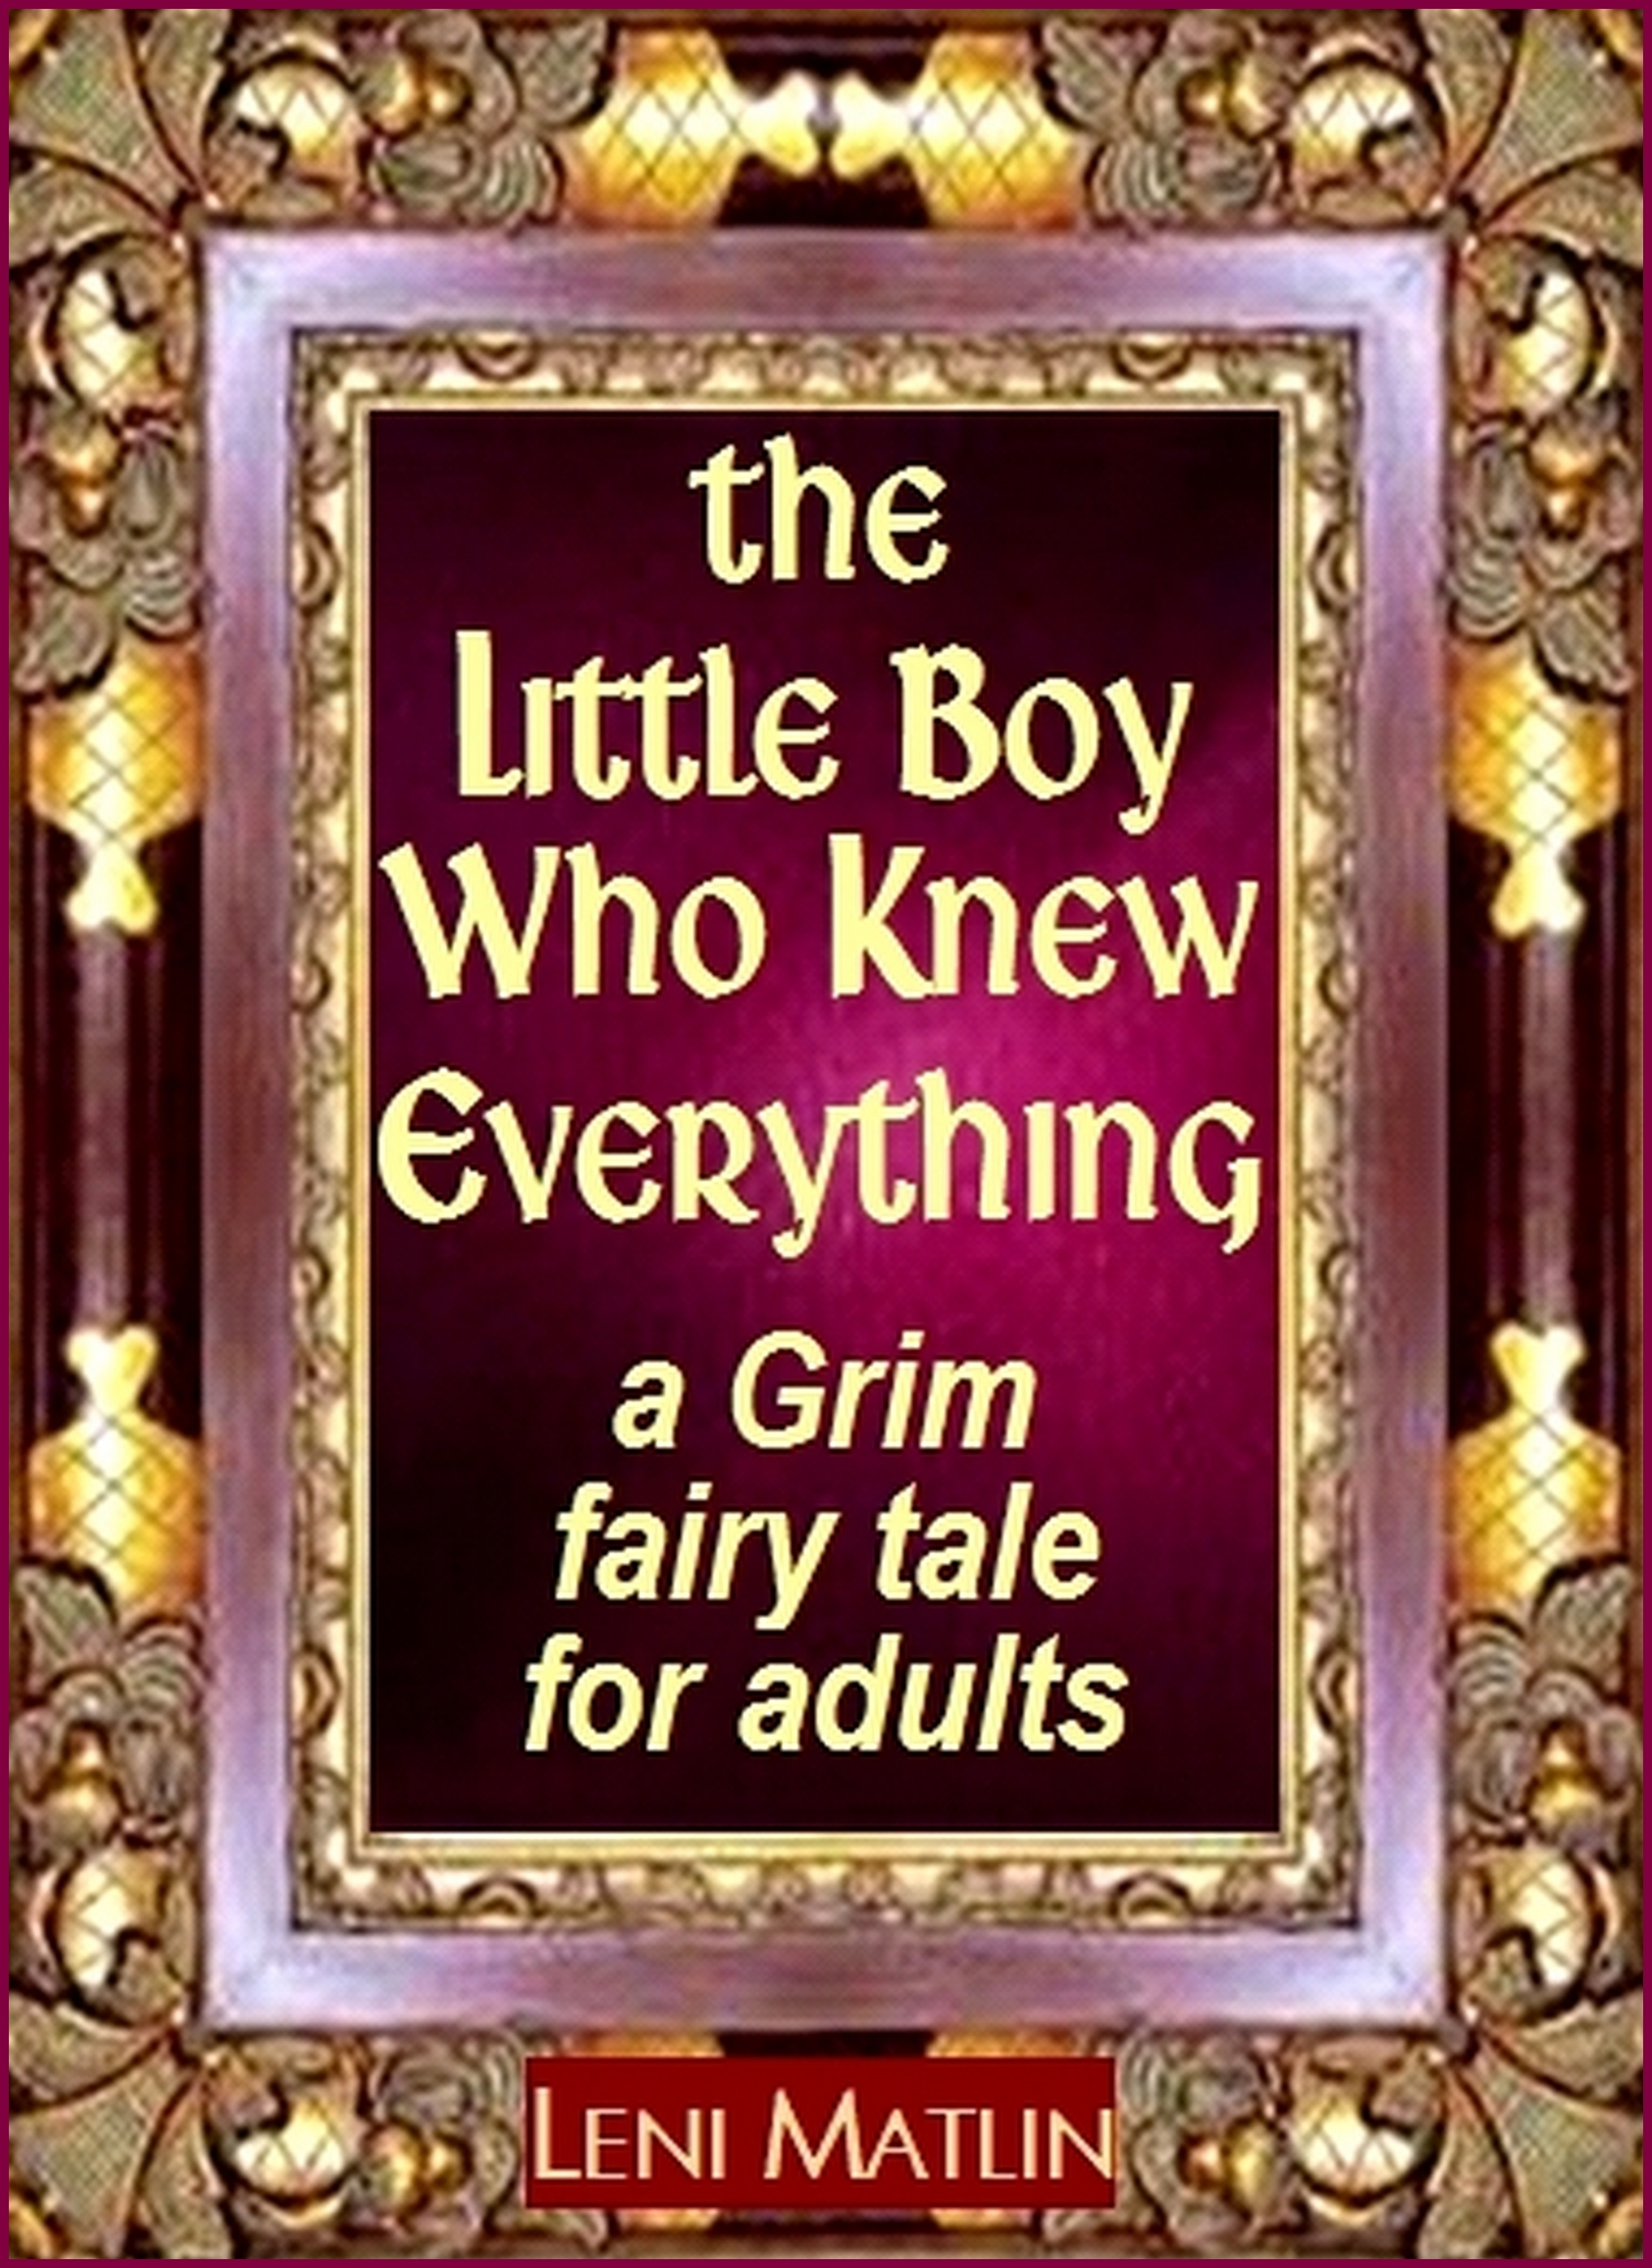 The Little Boy Who Knew Everything: A Grim Fairy Tale for Adults